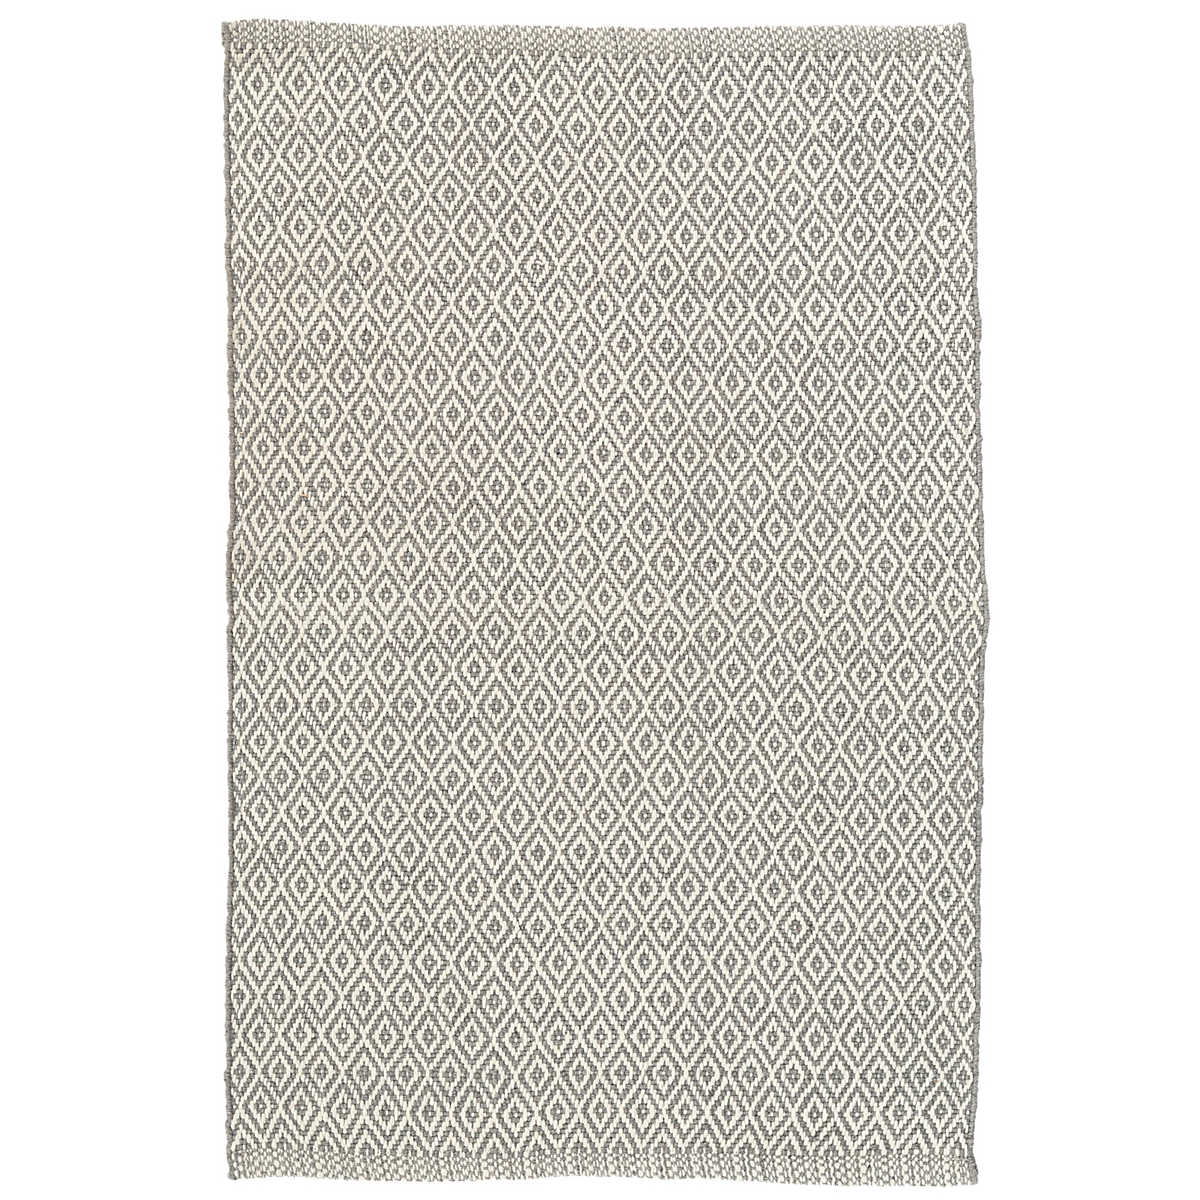 0057e7af44e9 Crystal Grey/Ivory Indoor/Outdoor Rug | Dash & Albert